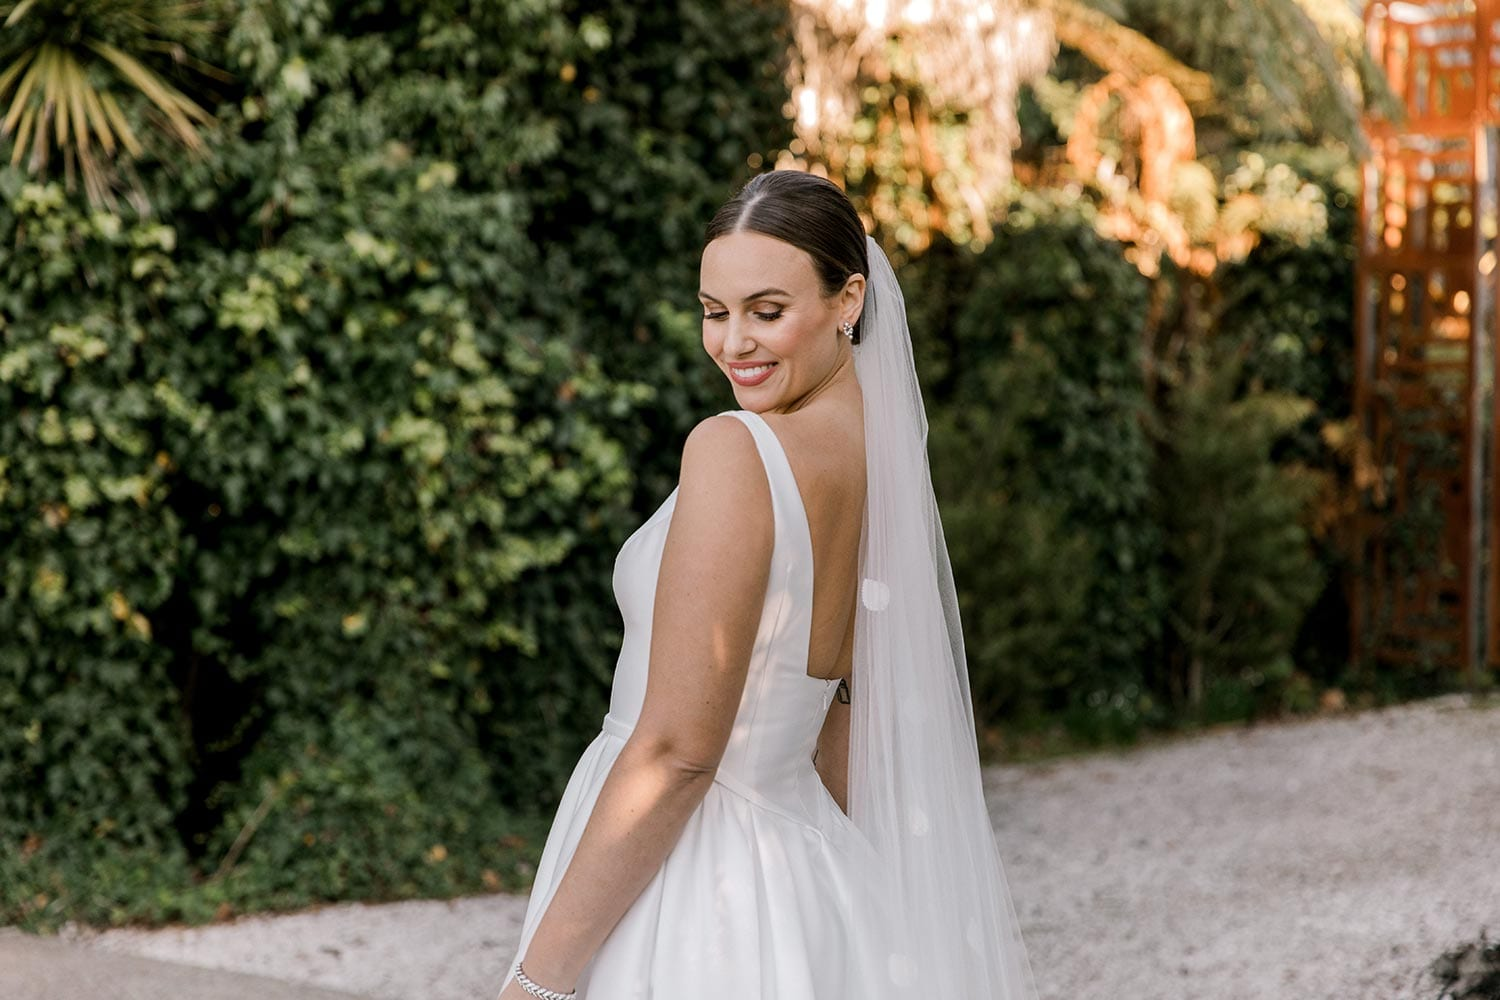 Madison Wedding Dress from Vinka Design. Classic Mikado satin wedding dress. Structured bodice with deep V-neckline & low back. Side pockets in the skirt give fun & versatility, with a sweeping train. View of bodice and back from the side. Photographed outdoors.